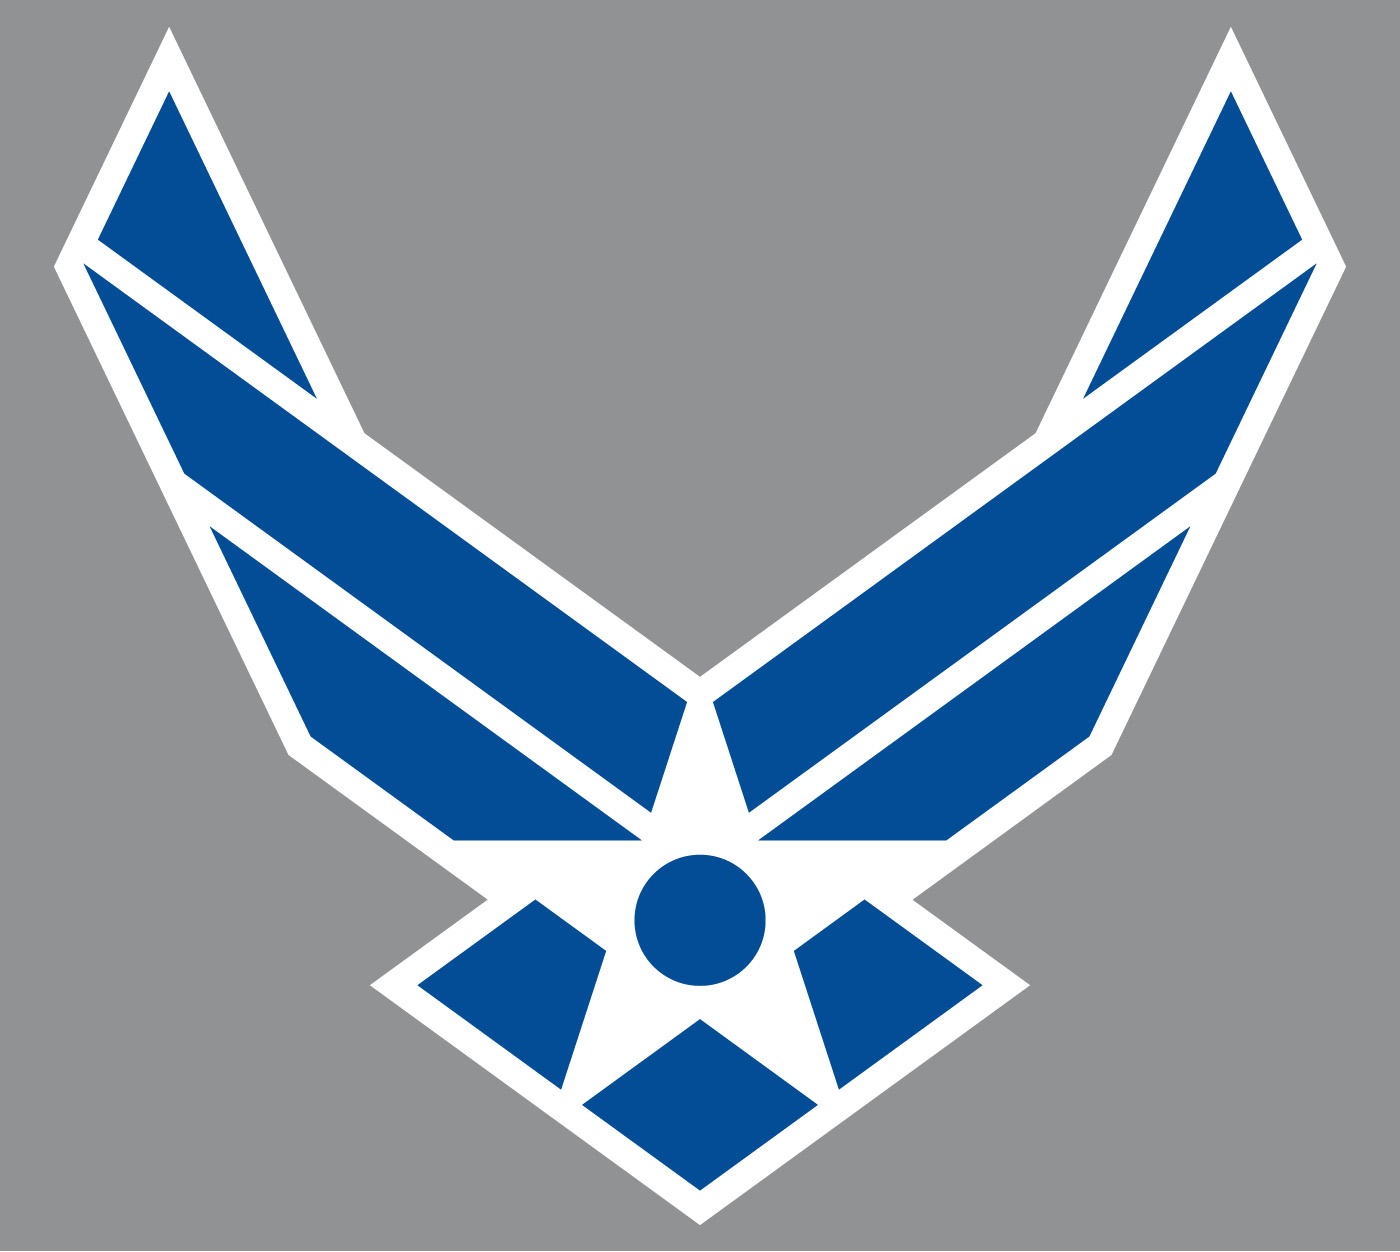 Art air force symbol blue with white outline on gray background the air force symbol buycottarizona Images